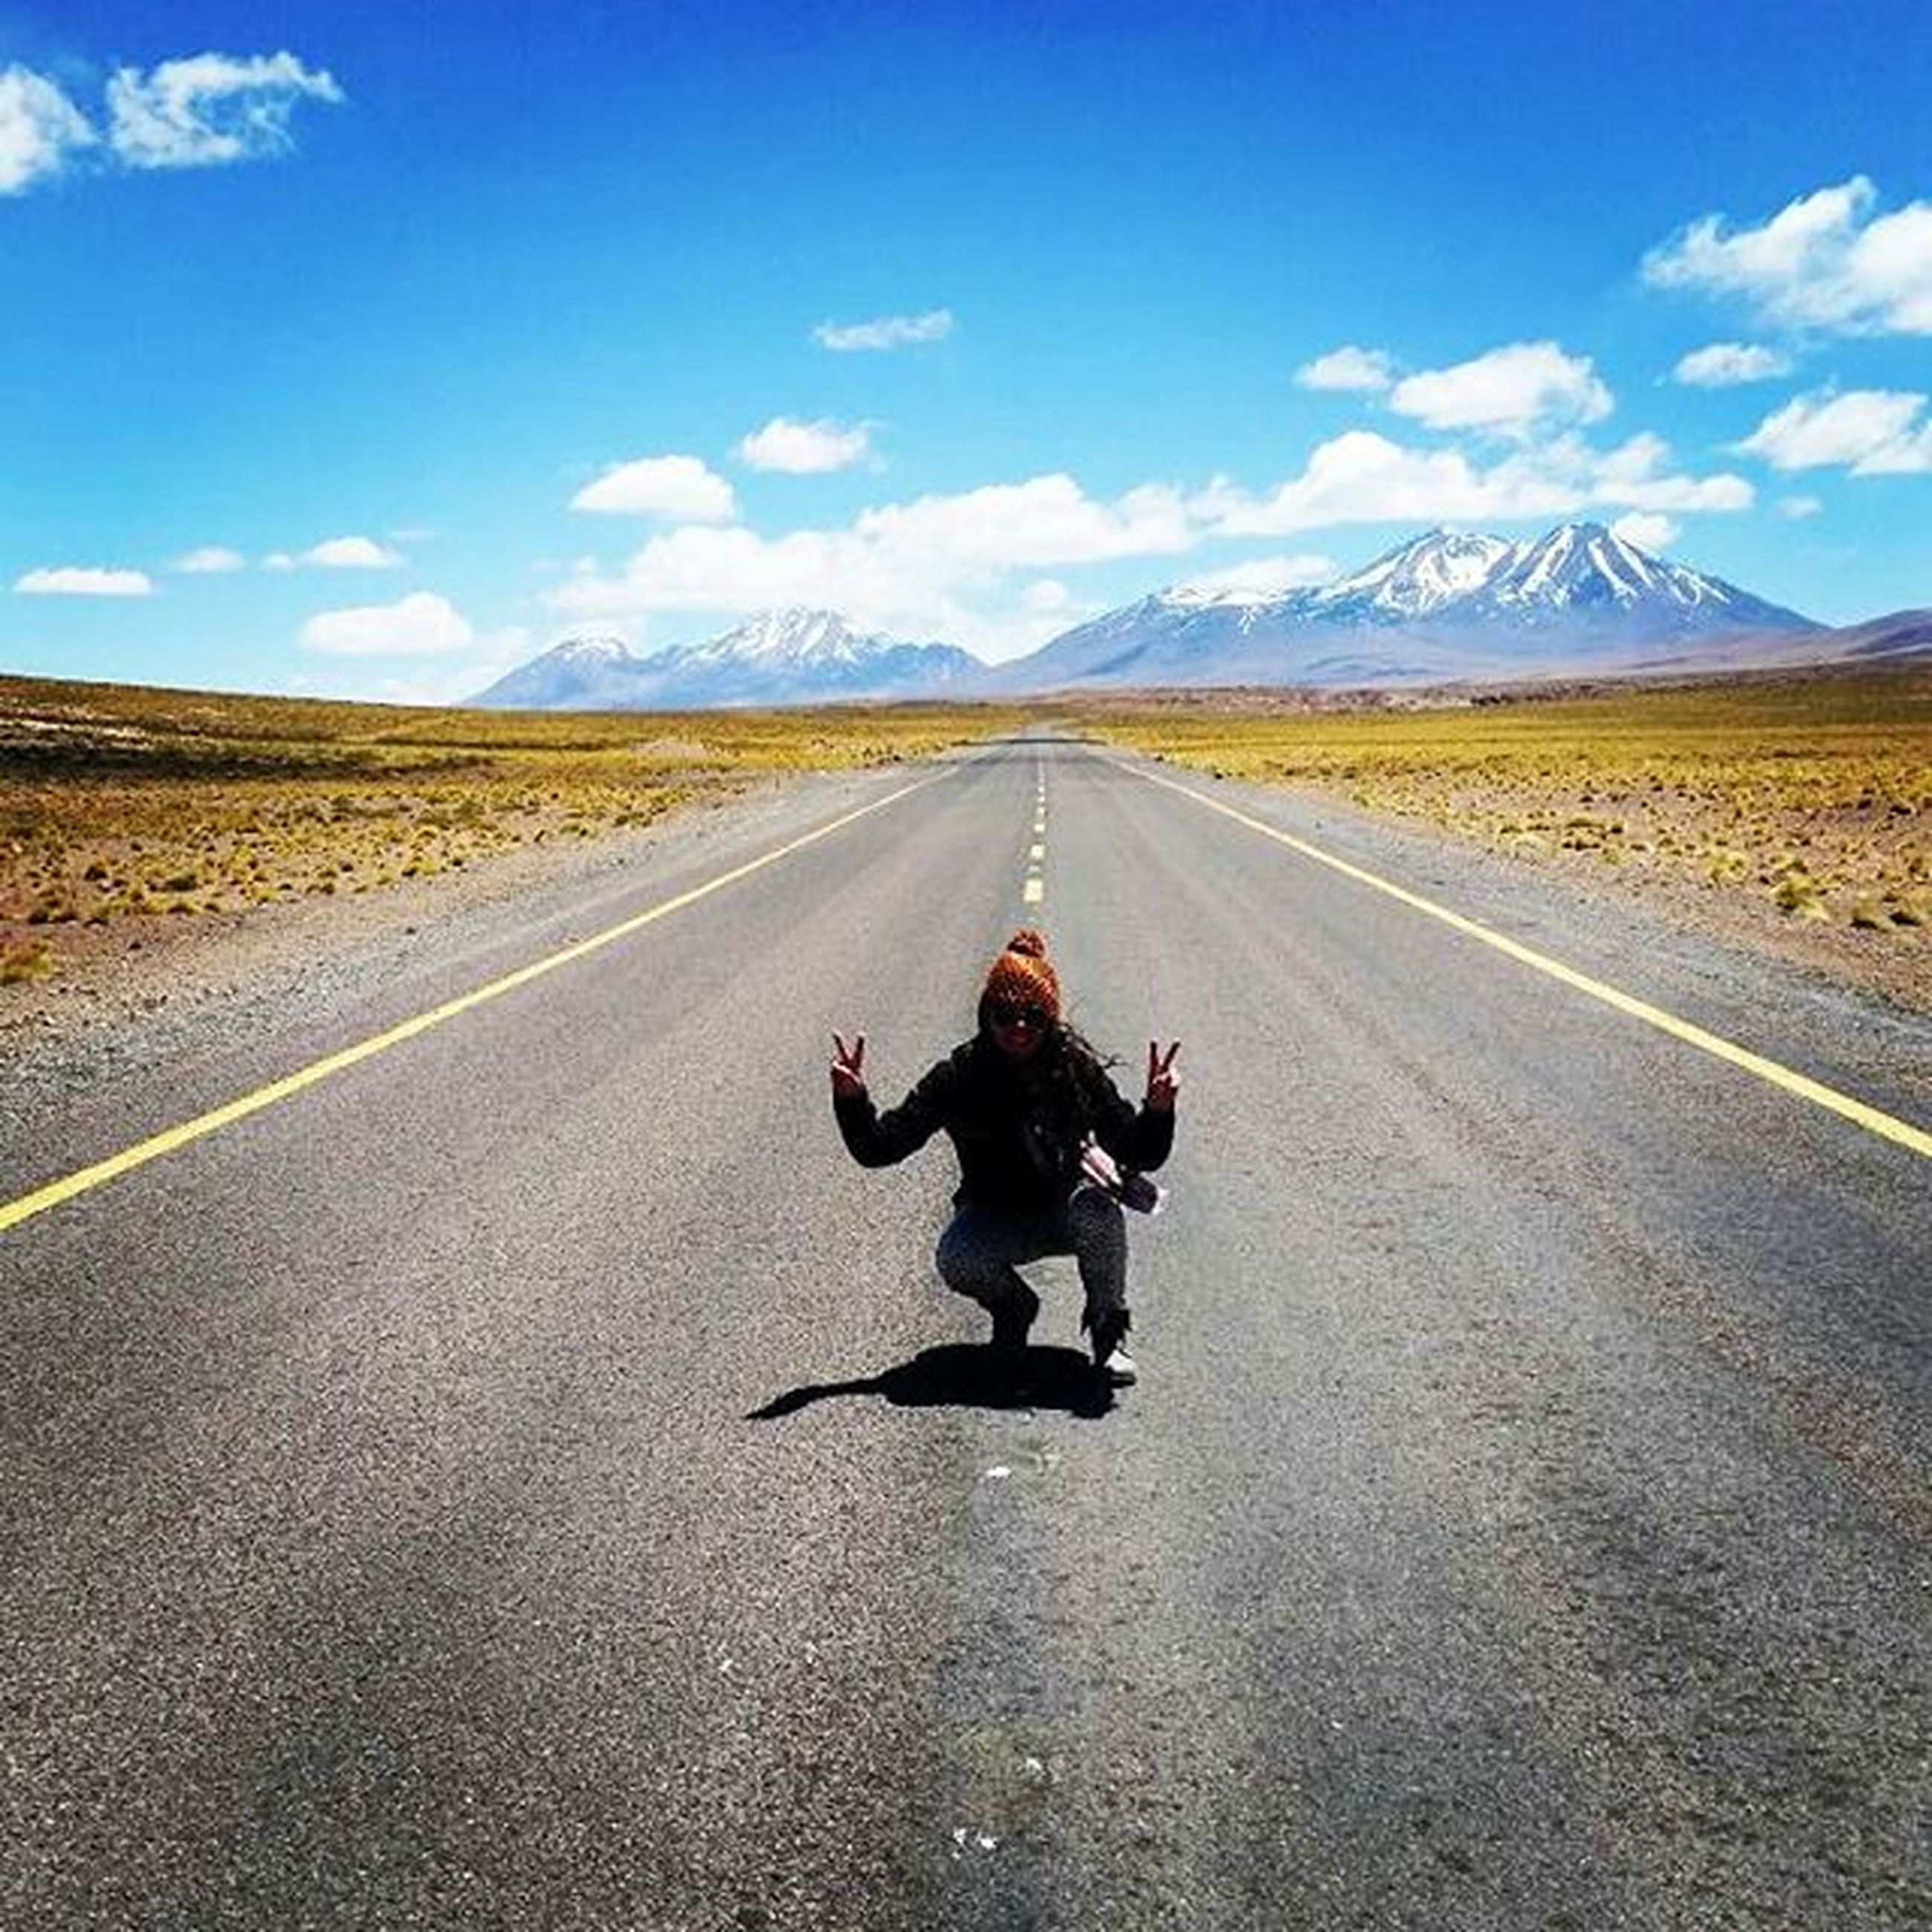 the way forward, transportation, road, vanishing point, diminishing perspective, sky, road marking, asphalt, rear view, landscape, full length, country road, dog, walking, cloud, street, cloud - sky, lifestyles